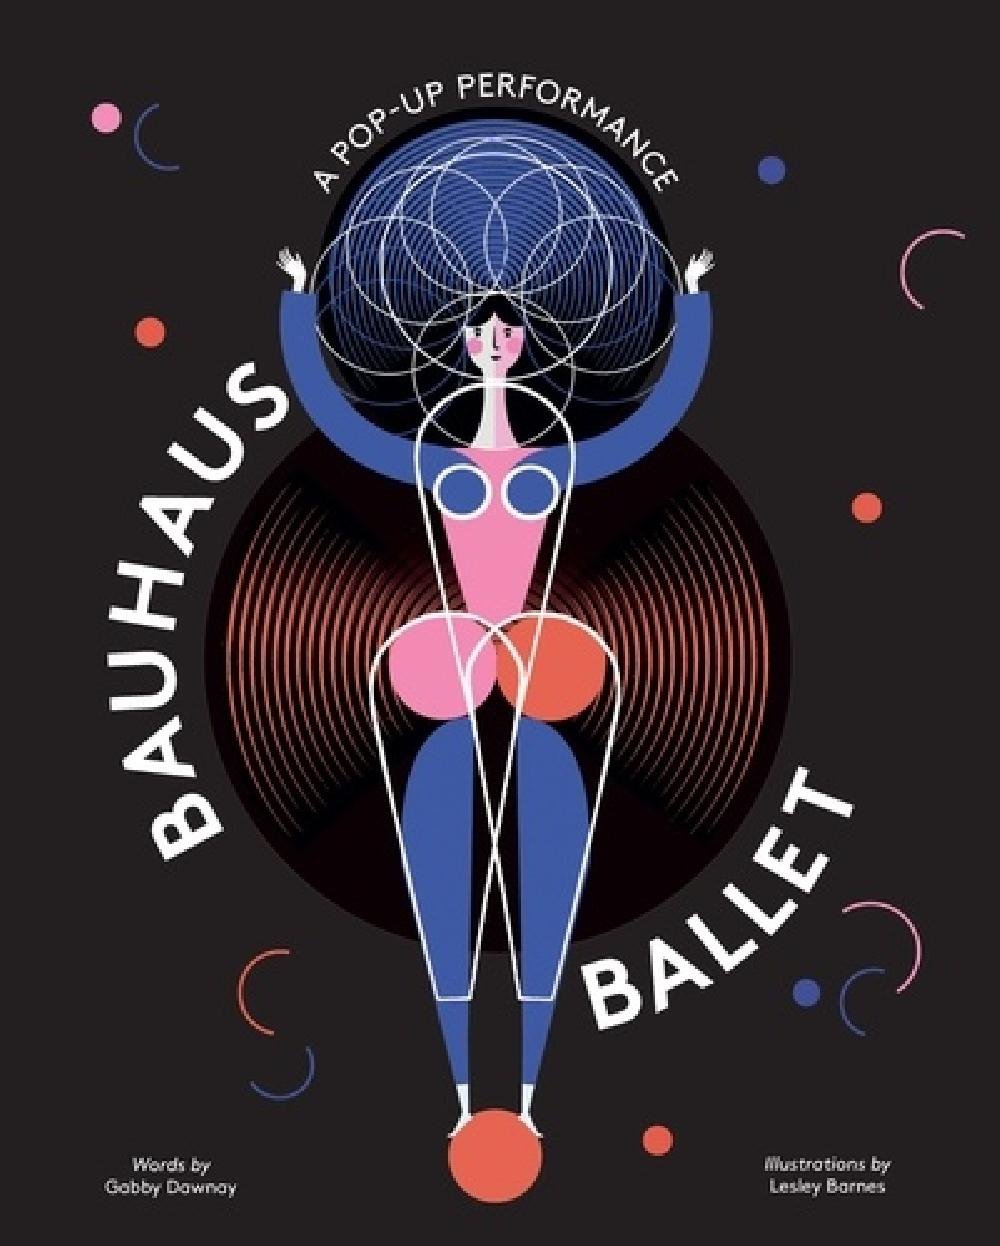 Bauhaus ballet - A pop-up performance / Edition en anglais